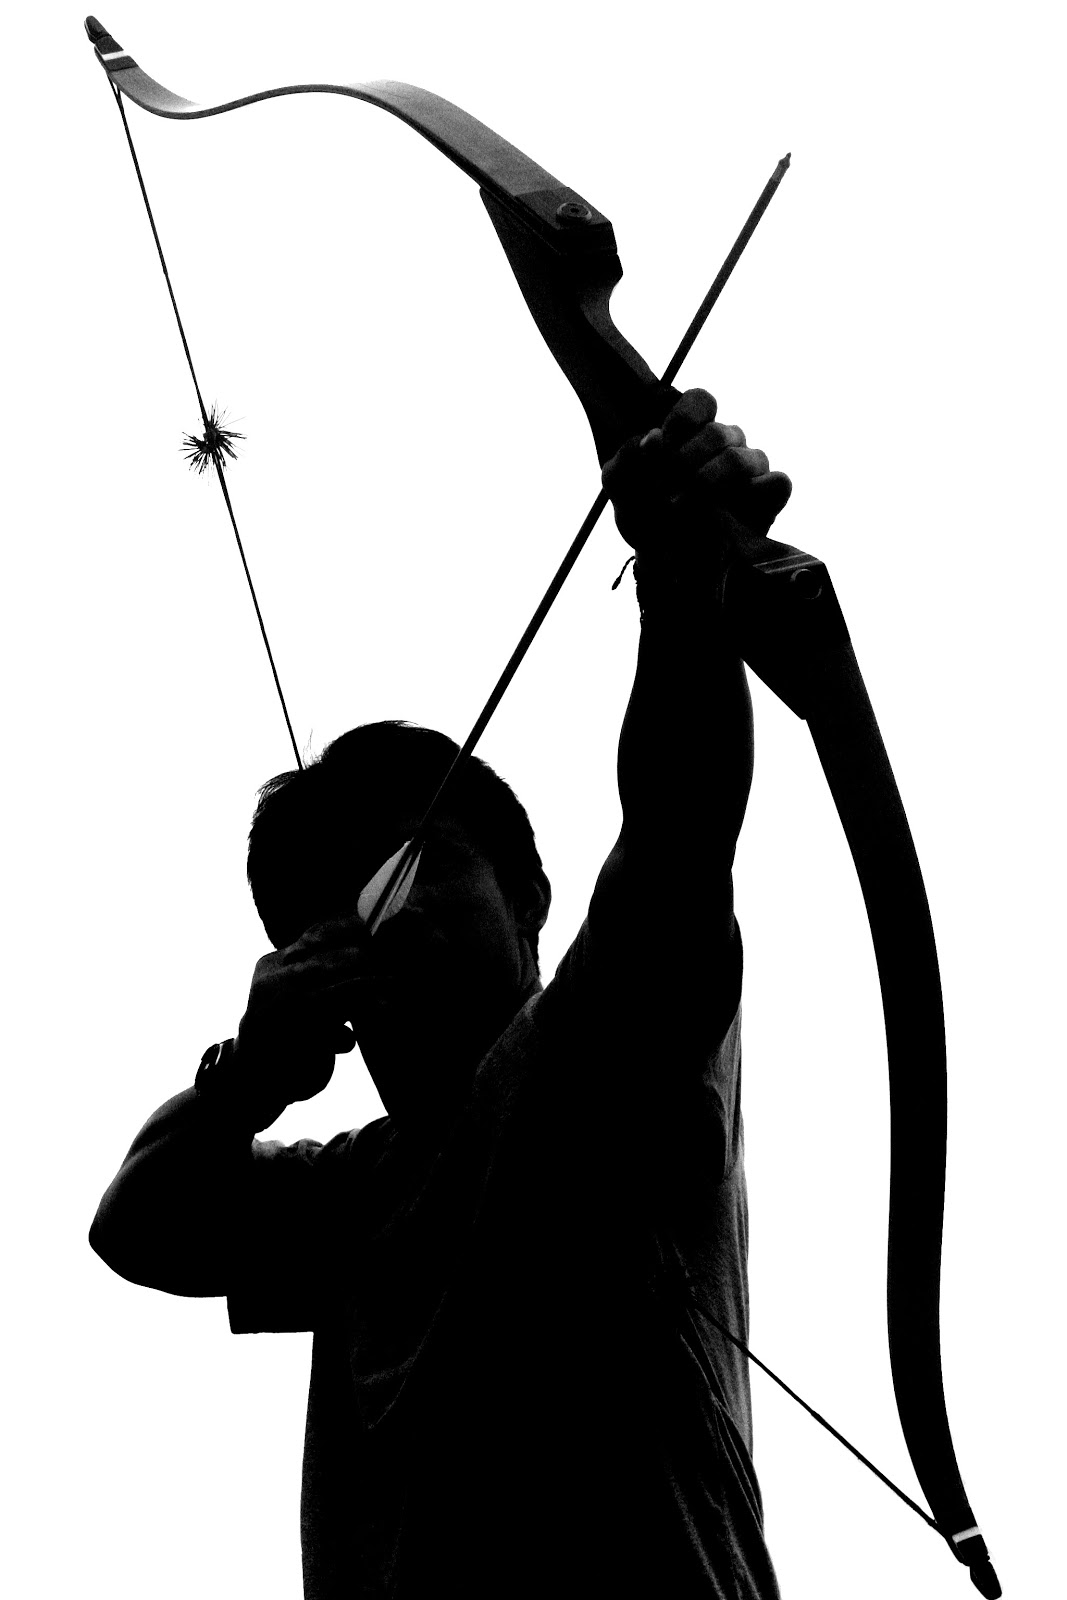 Bow and arrow images clip art png black and white download Bow and arrow archery clipart - Clipartix png black and white download